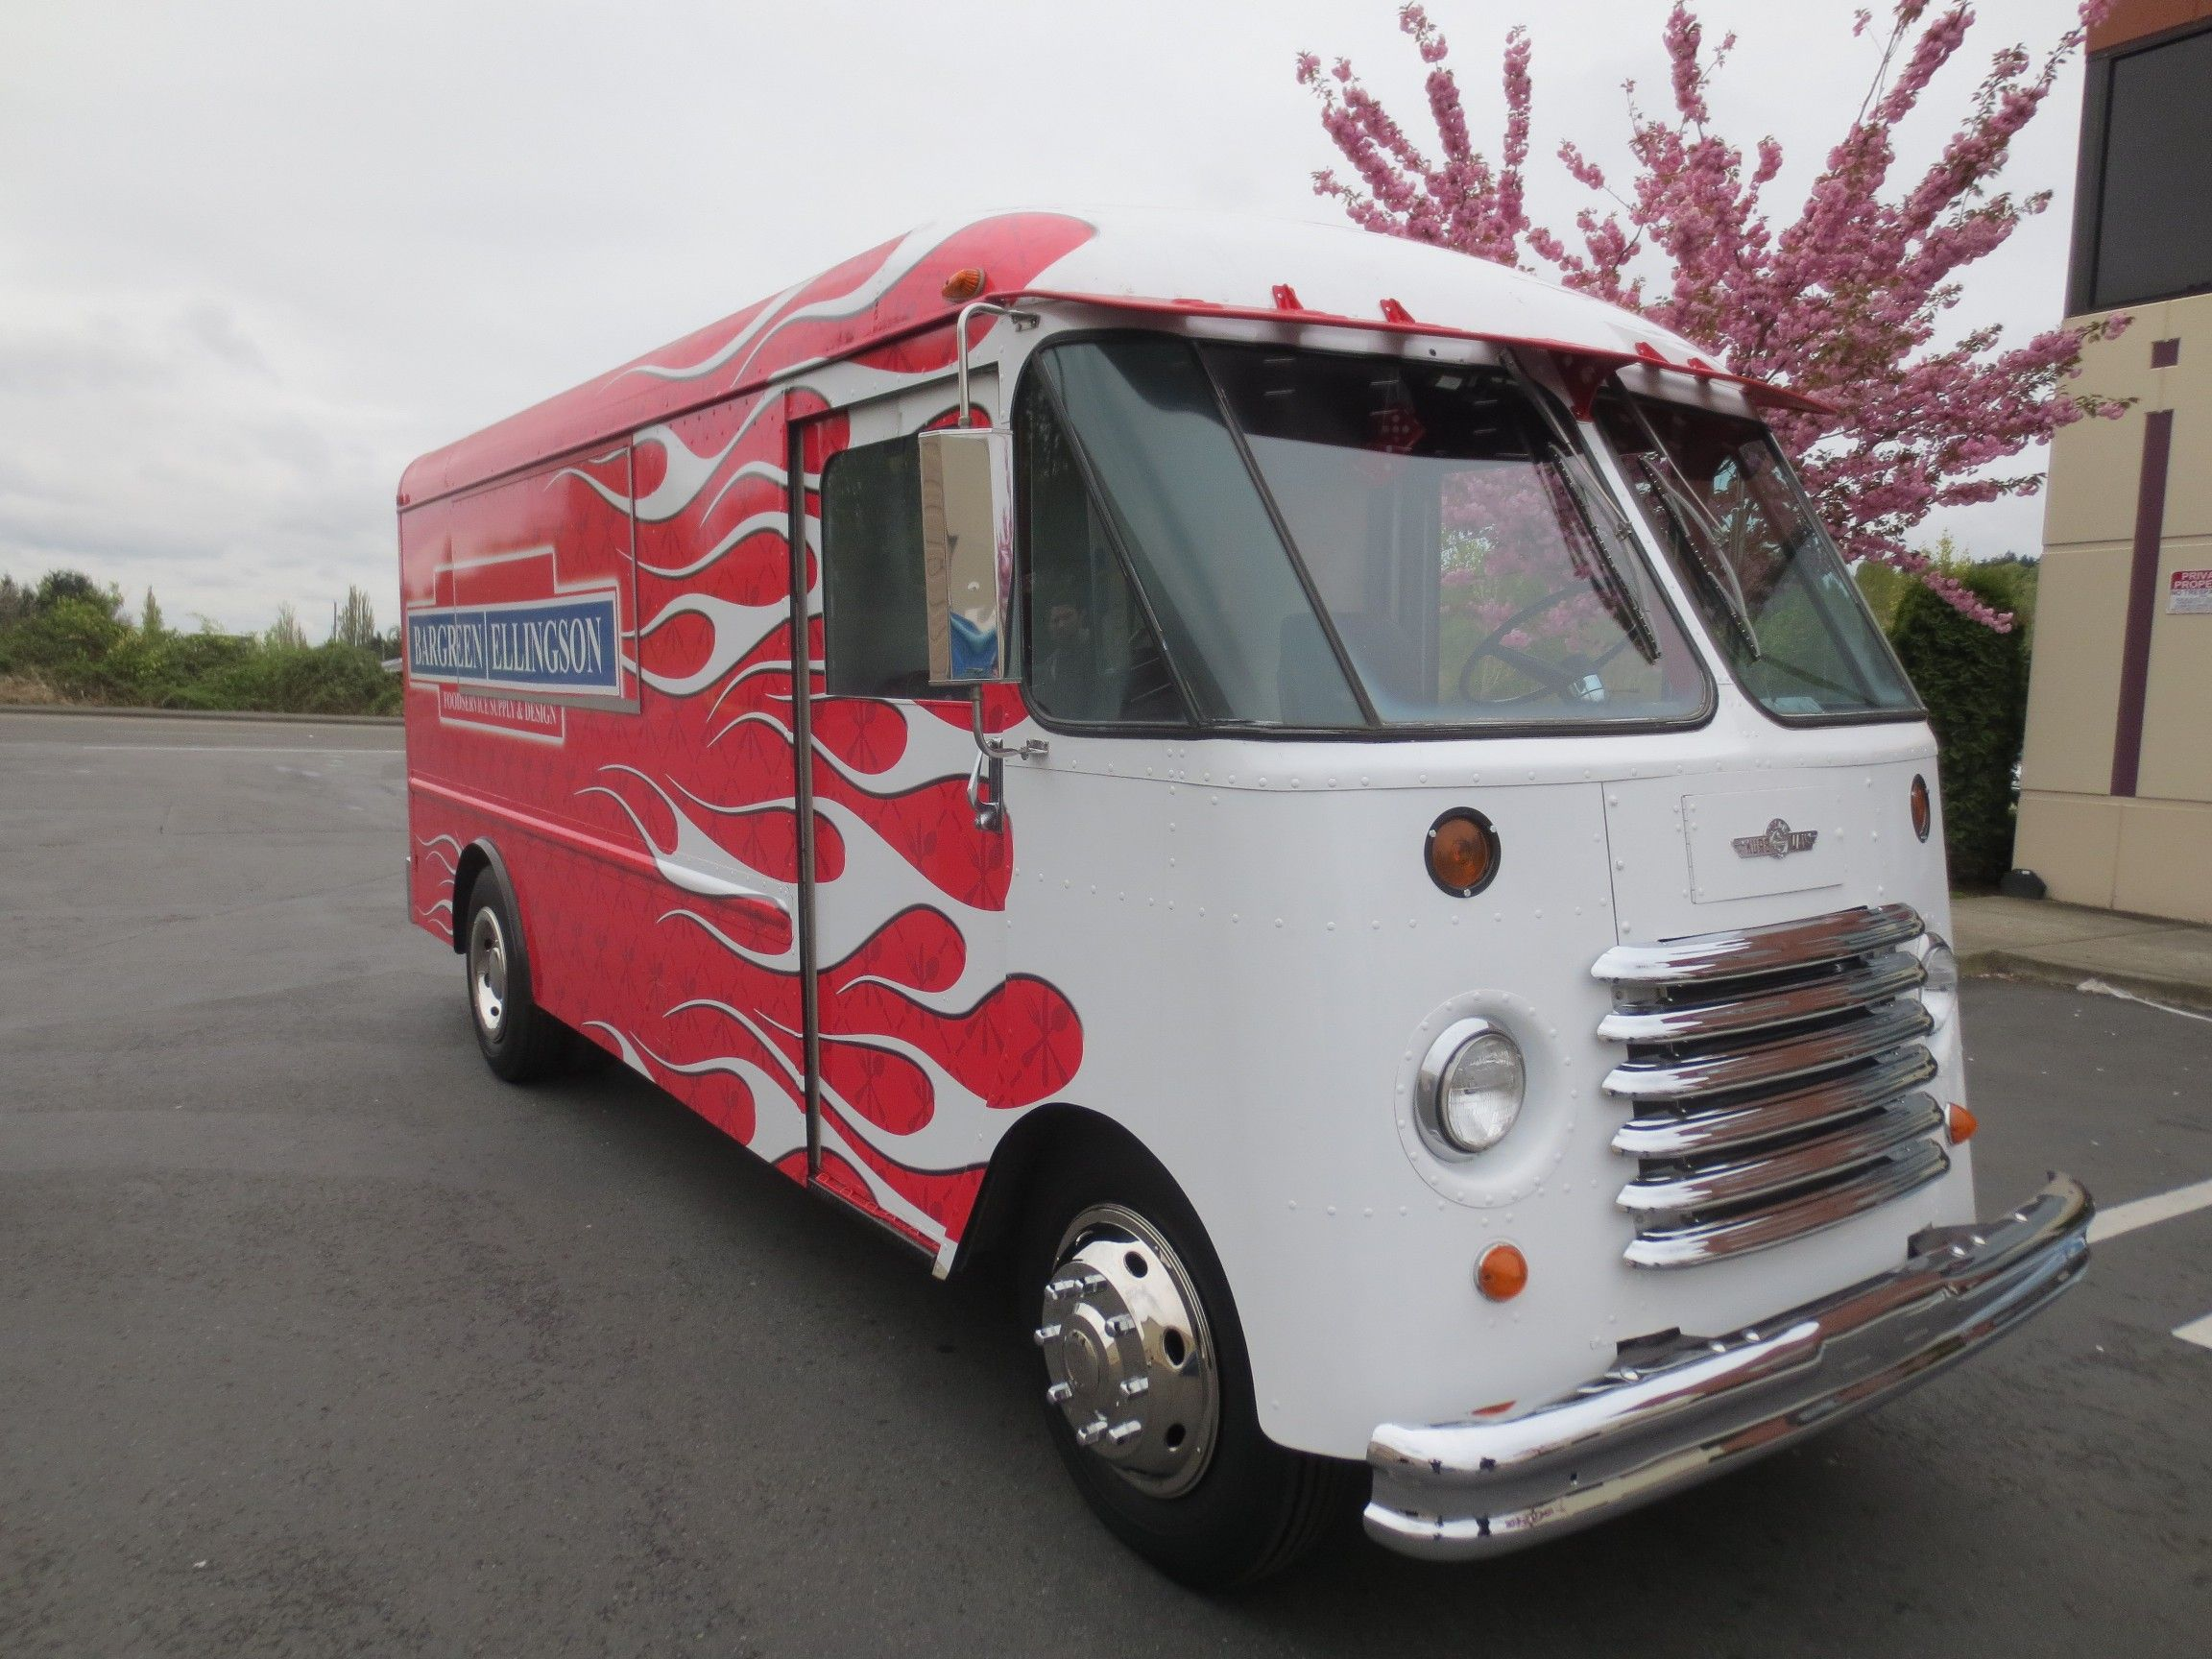 1961 Chevrolet Grumman Step Van Stepvan - Year of Clean Water